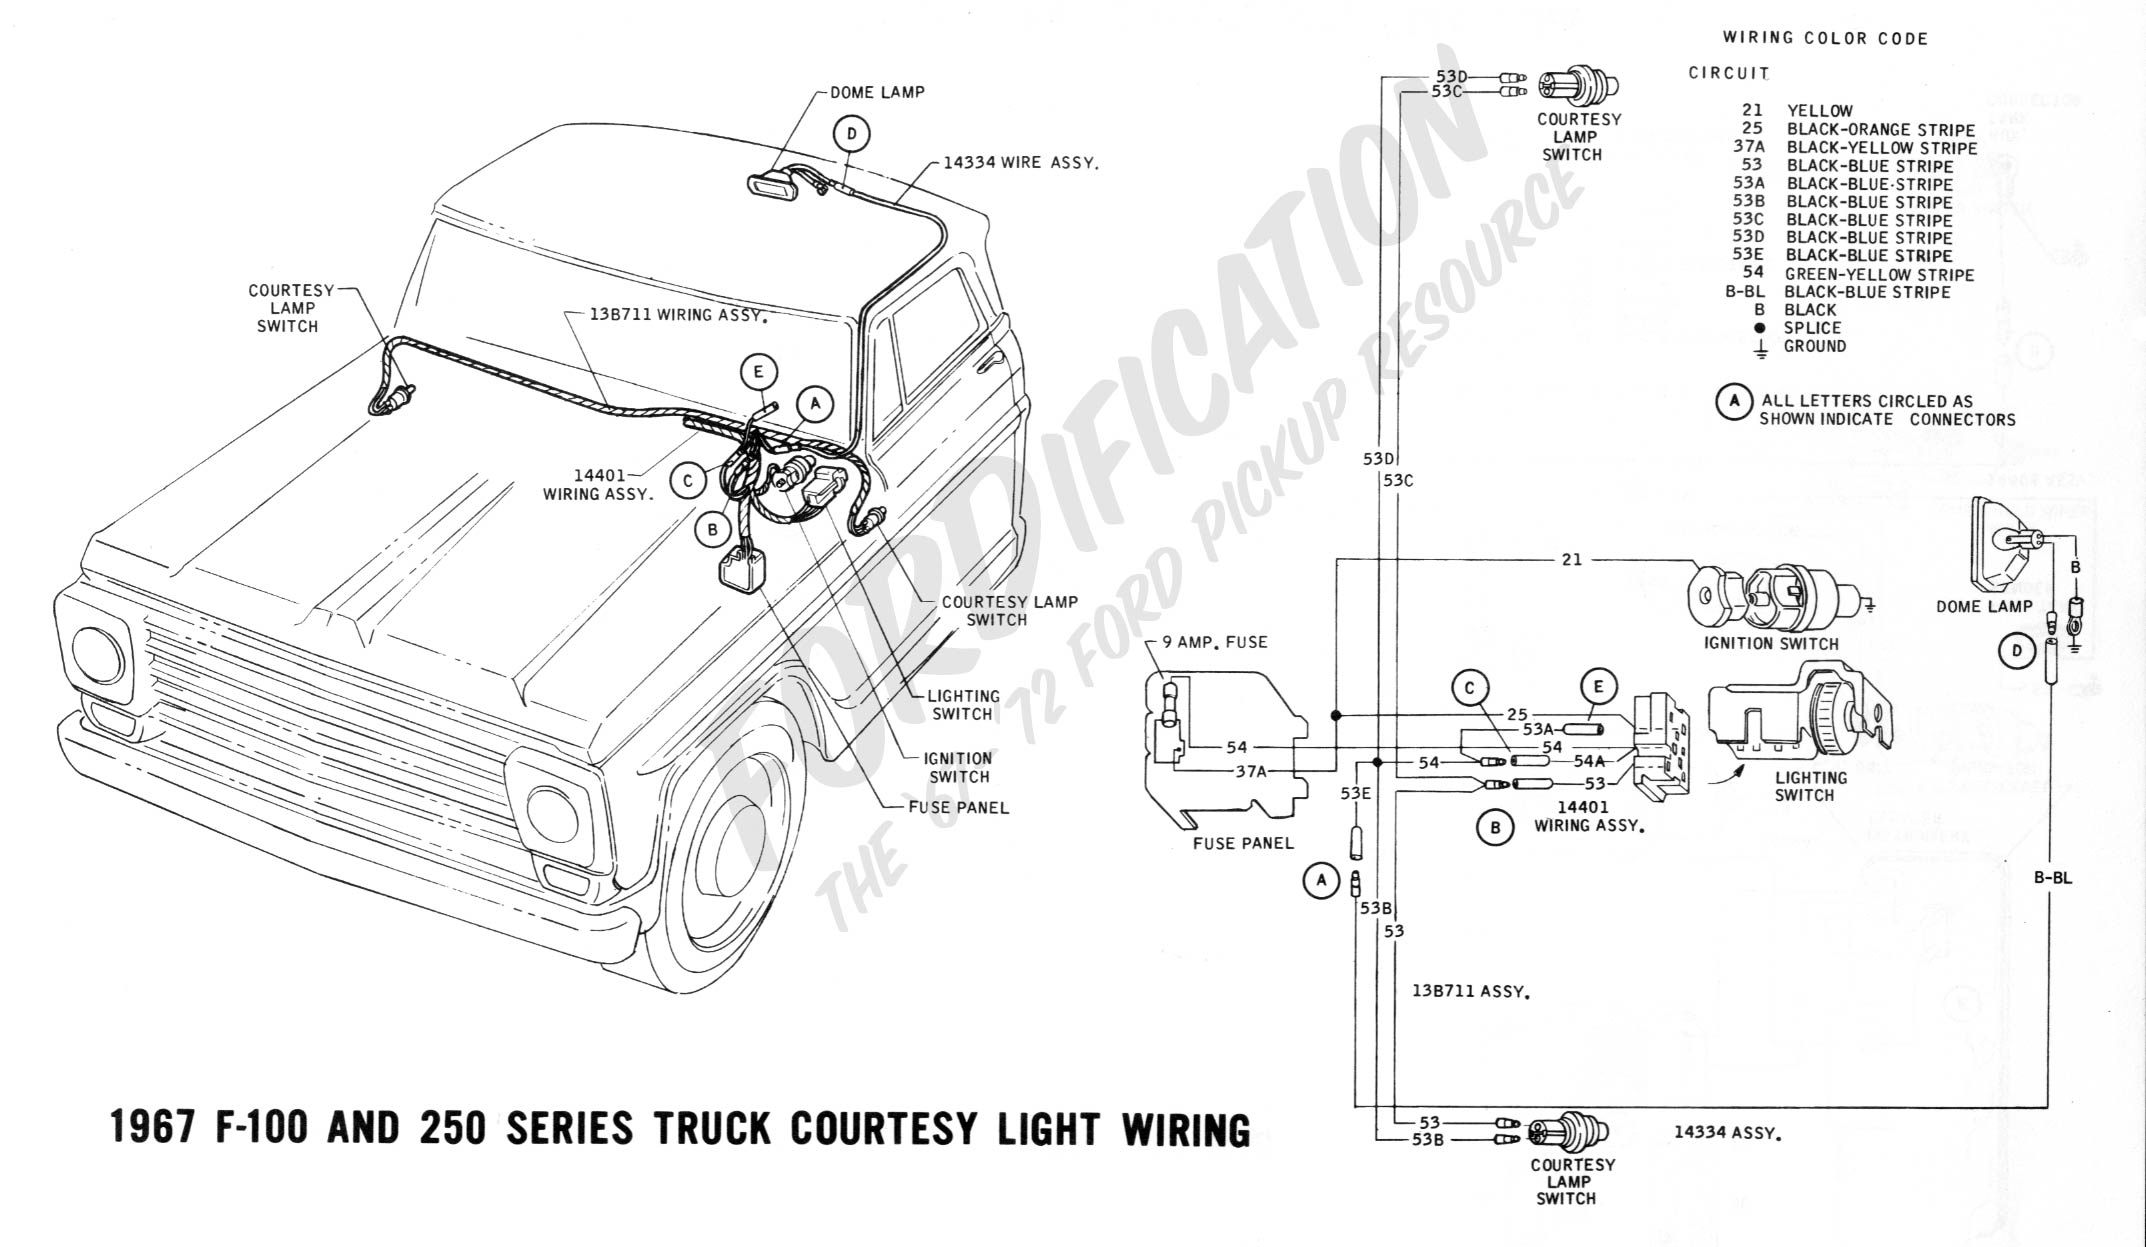 wiring 1967courtesylight 69 f100 wiring diagram 1973 ford f100 wiring diagram \u2022 wiring 1966 ford f100 wiring diagram at gsmx.co